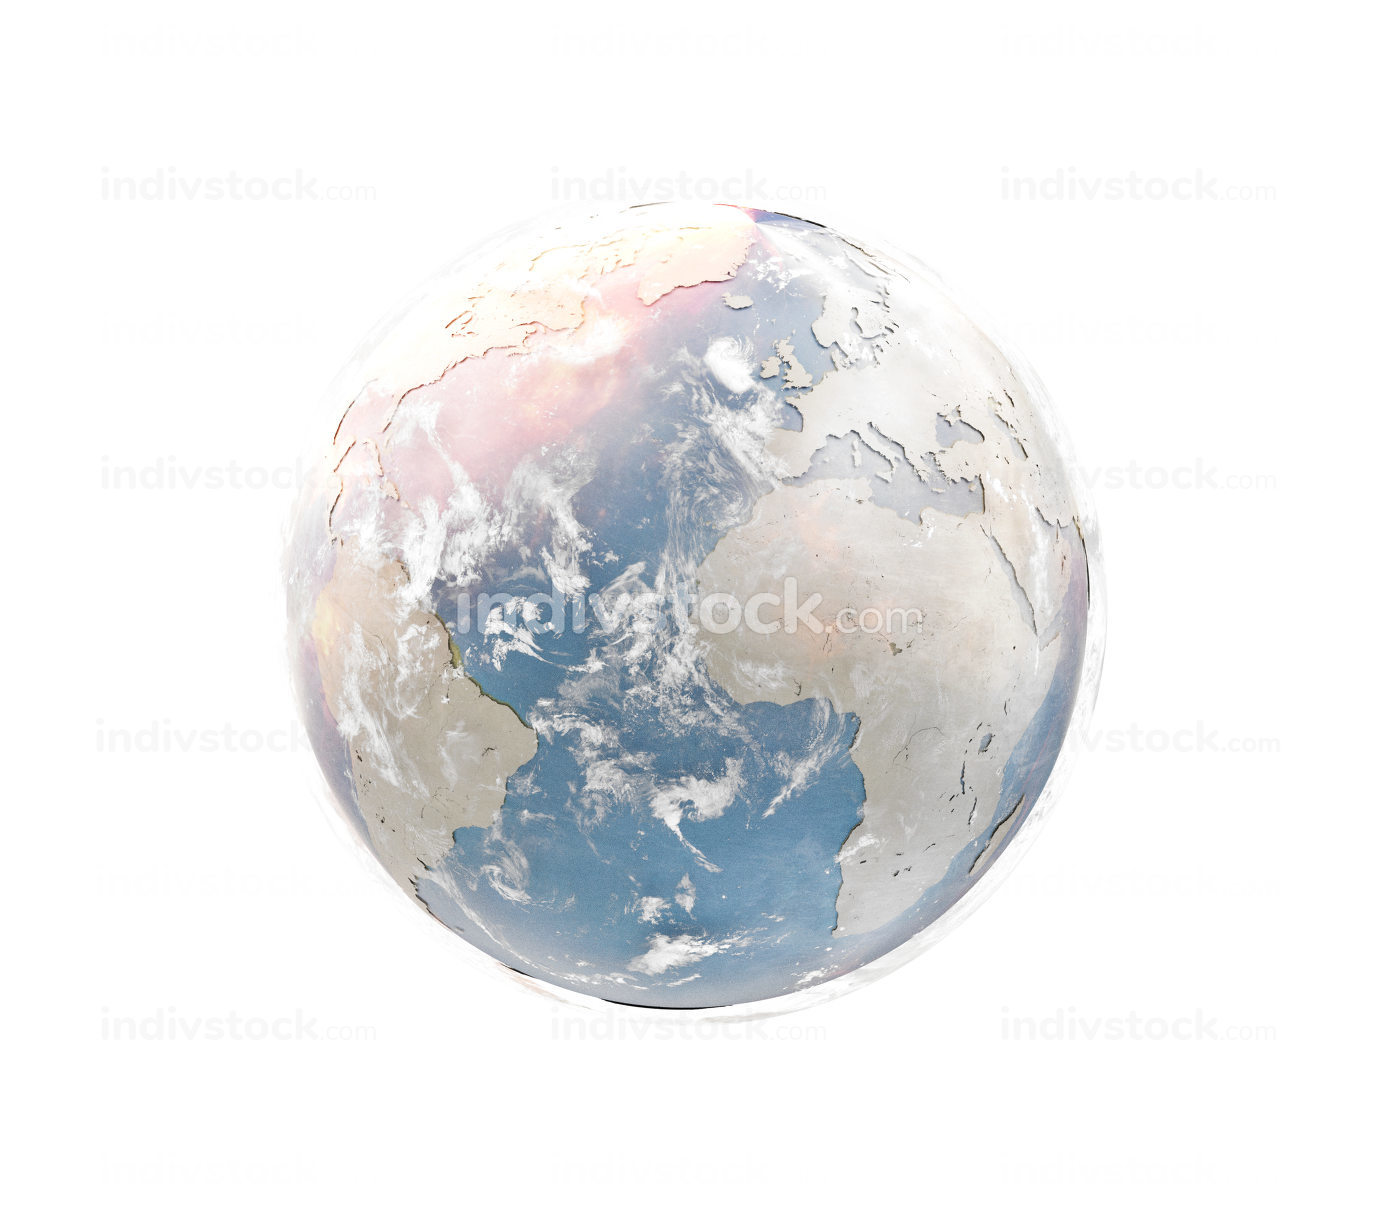 planet earth in sand desert design 3d-illustration. elements of this image furnished by NASA